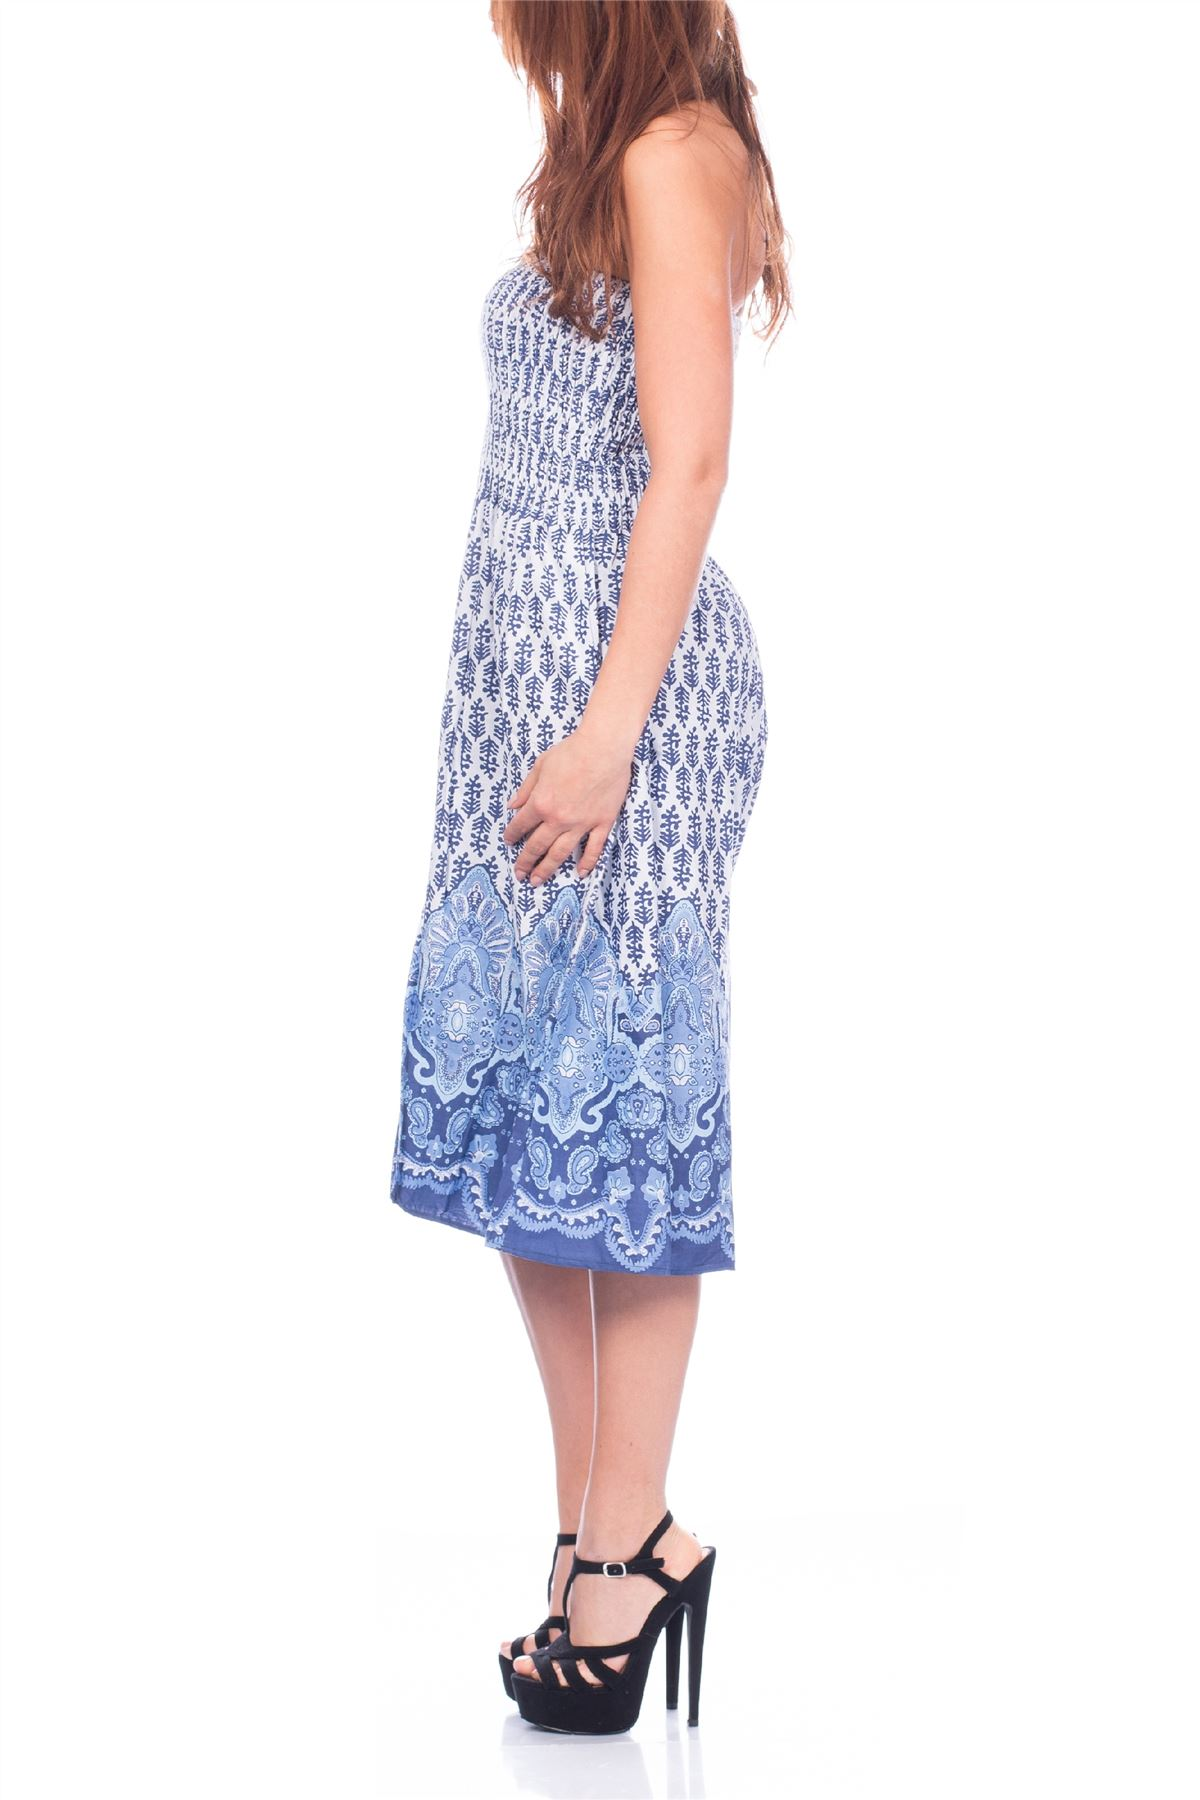 Latest unique fashion dresses StyleWe provides short and long cocktail dresses for wedding and prom. Tea Length Dresses Vintage Dresses Paneled Holiday Crew Neck Printed Shift Floral See-through Look Midi Dress. $ $ Free Shipping. Quick Shop.